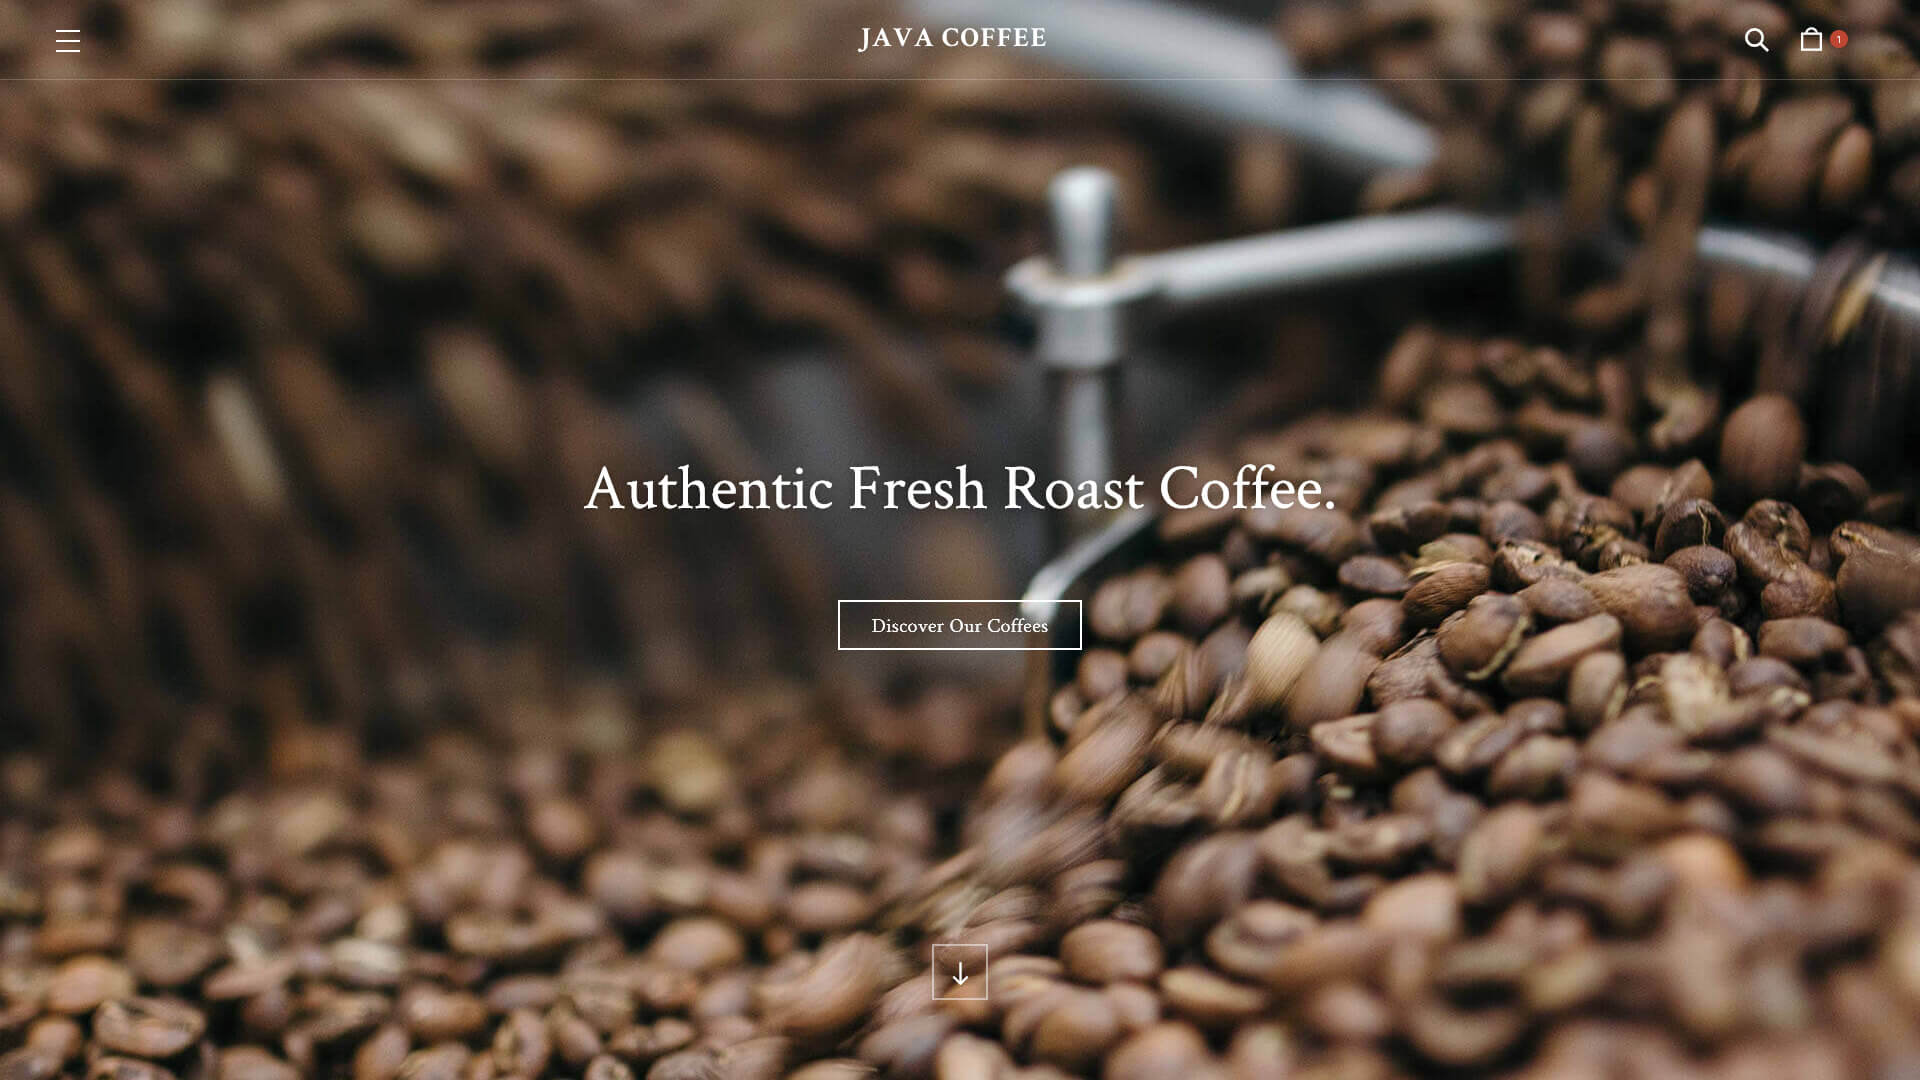 java coffee roastery and coffee shop template